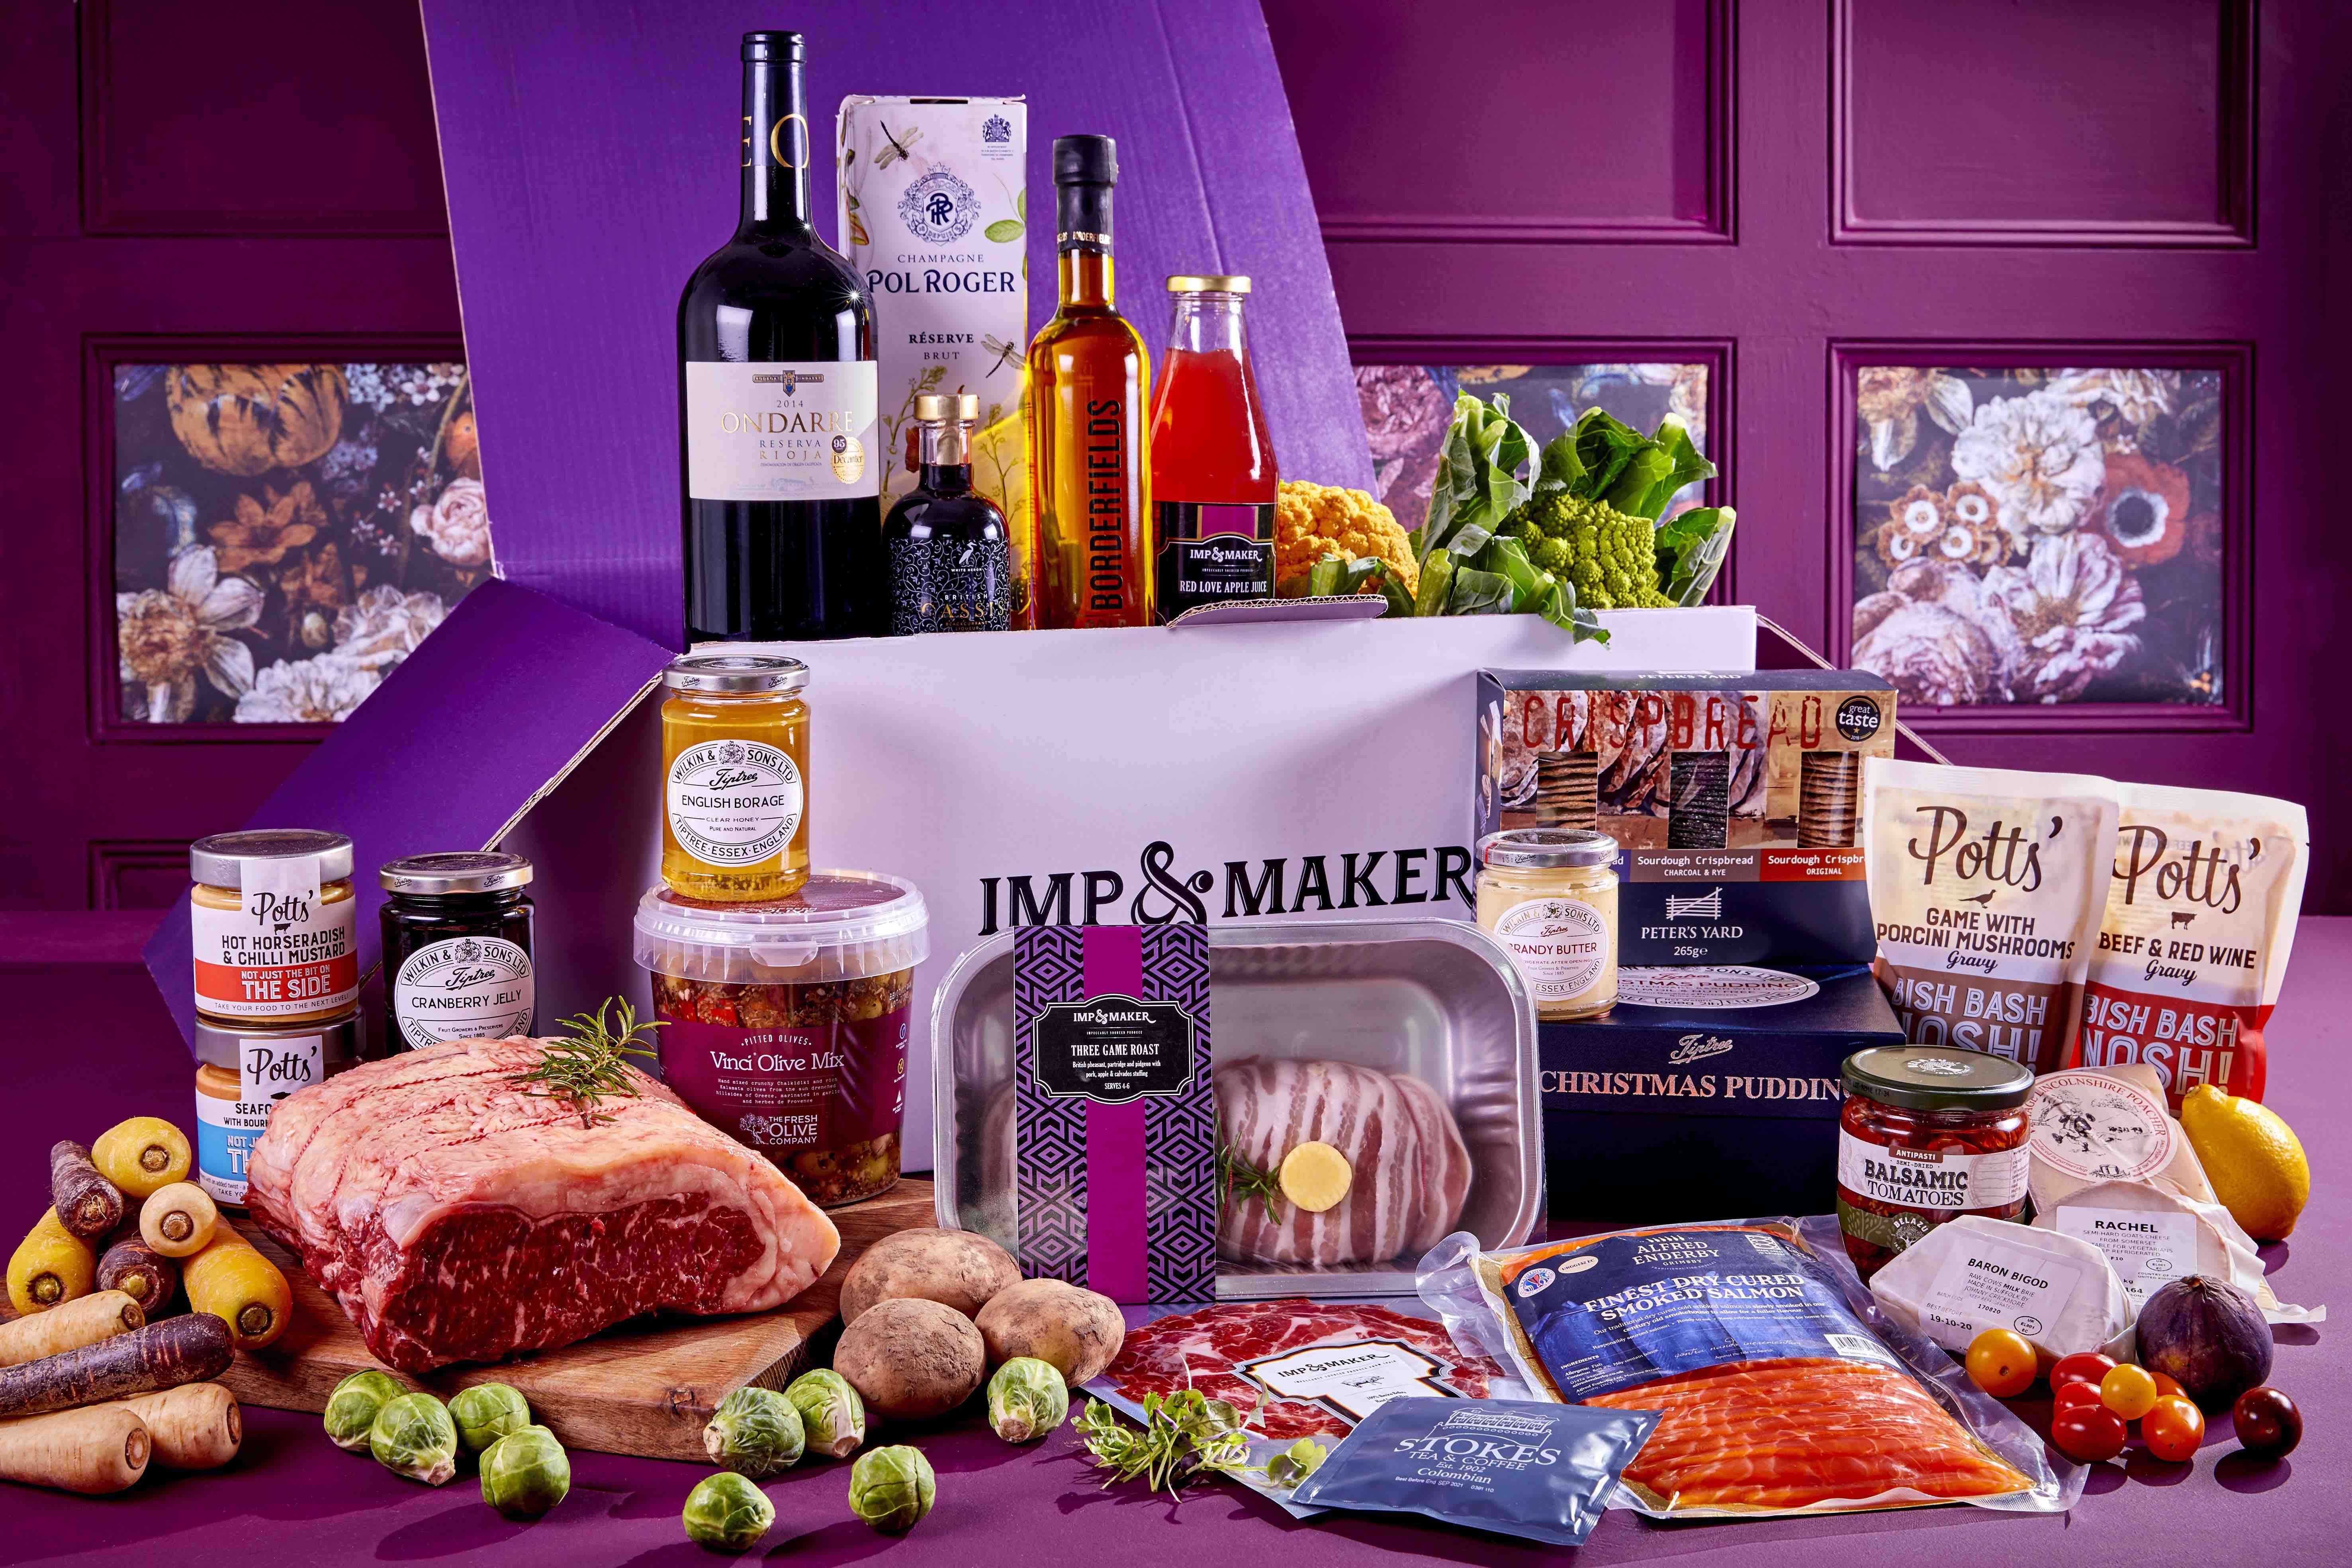 Luxury hamper IMP & MAKER Festive Showstopper Collection